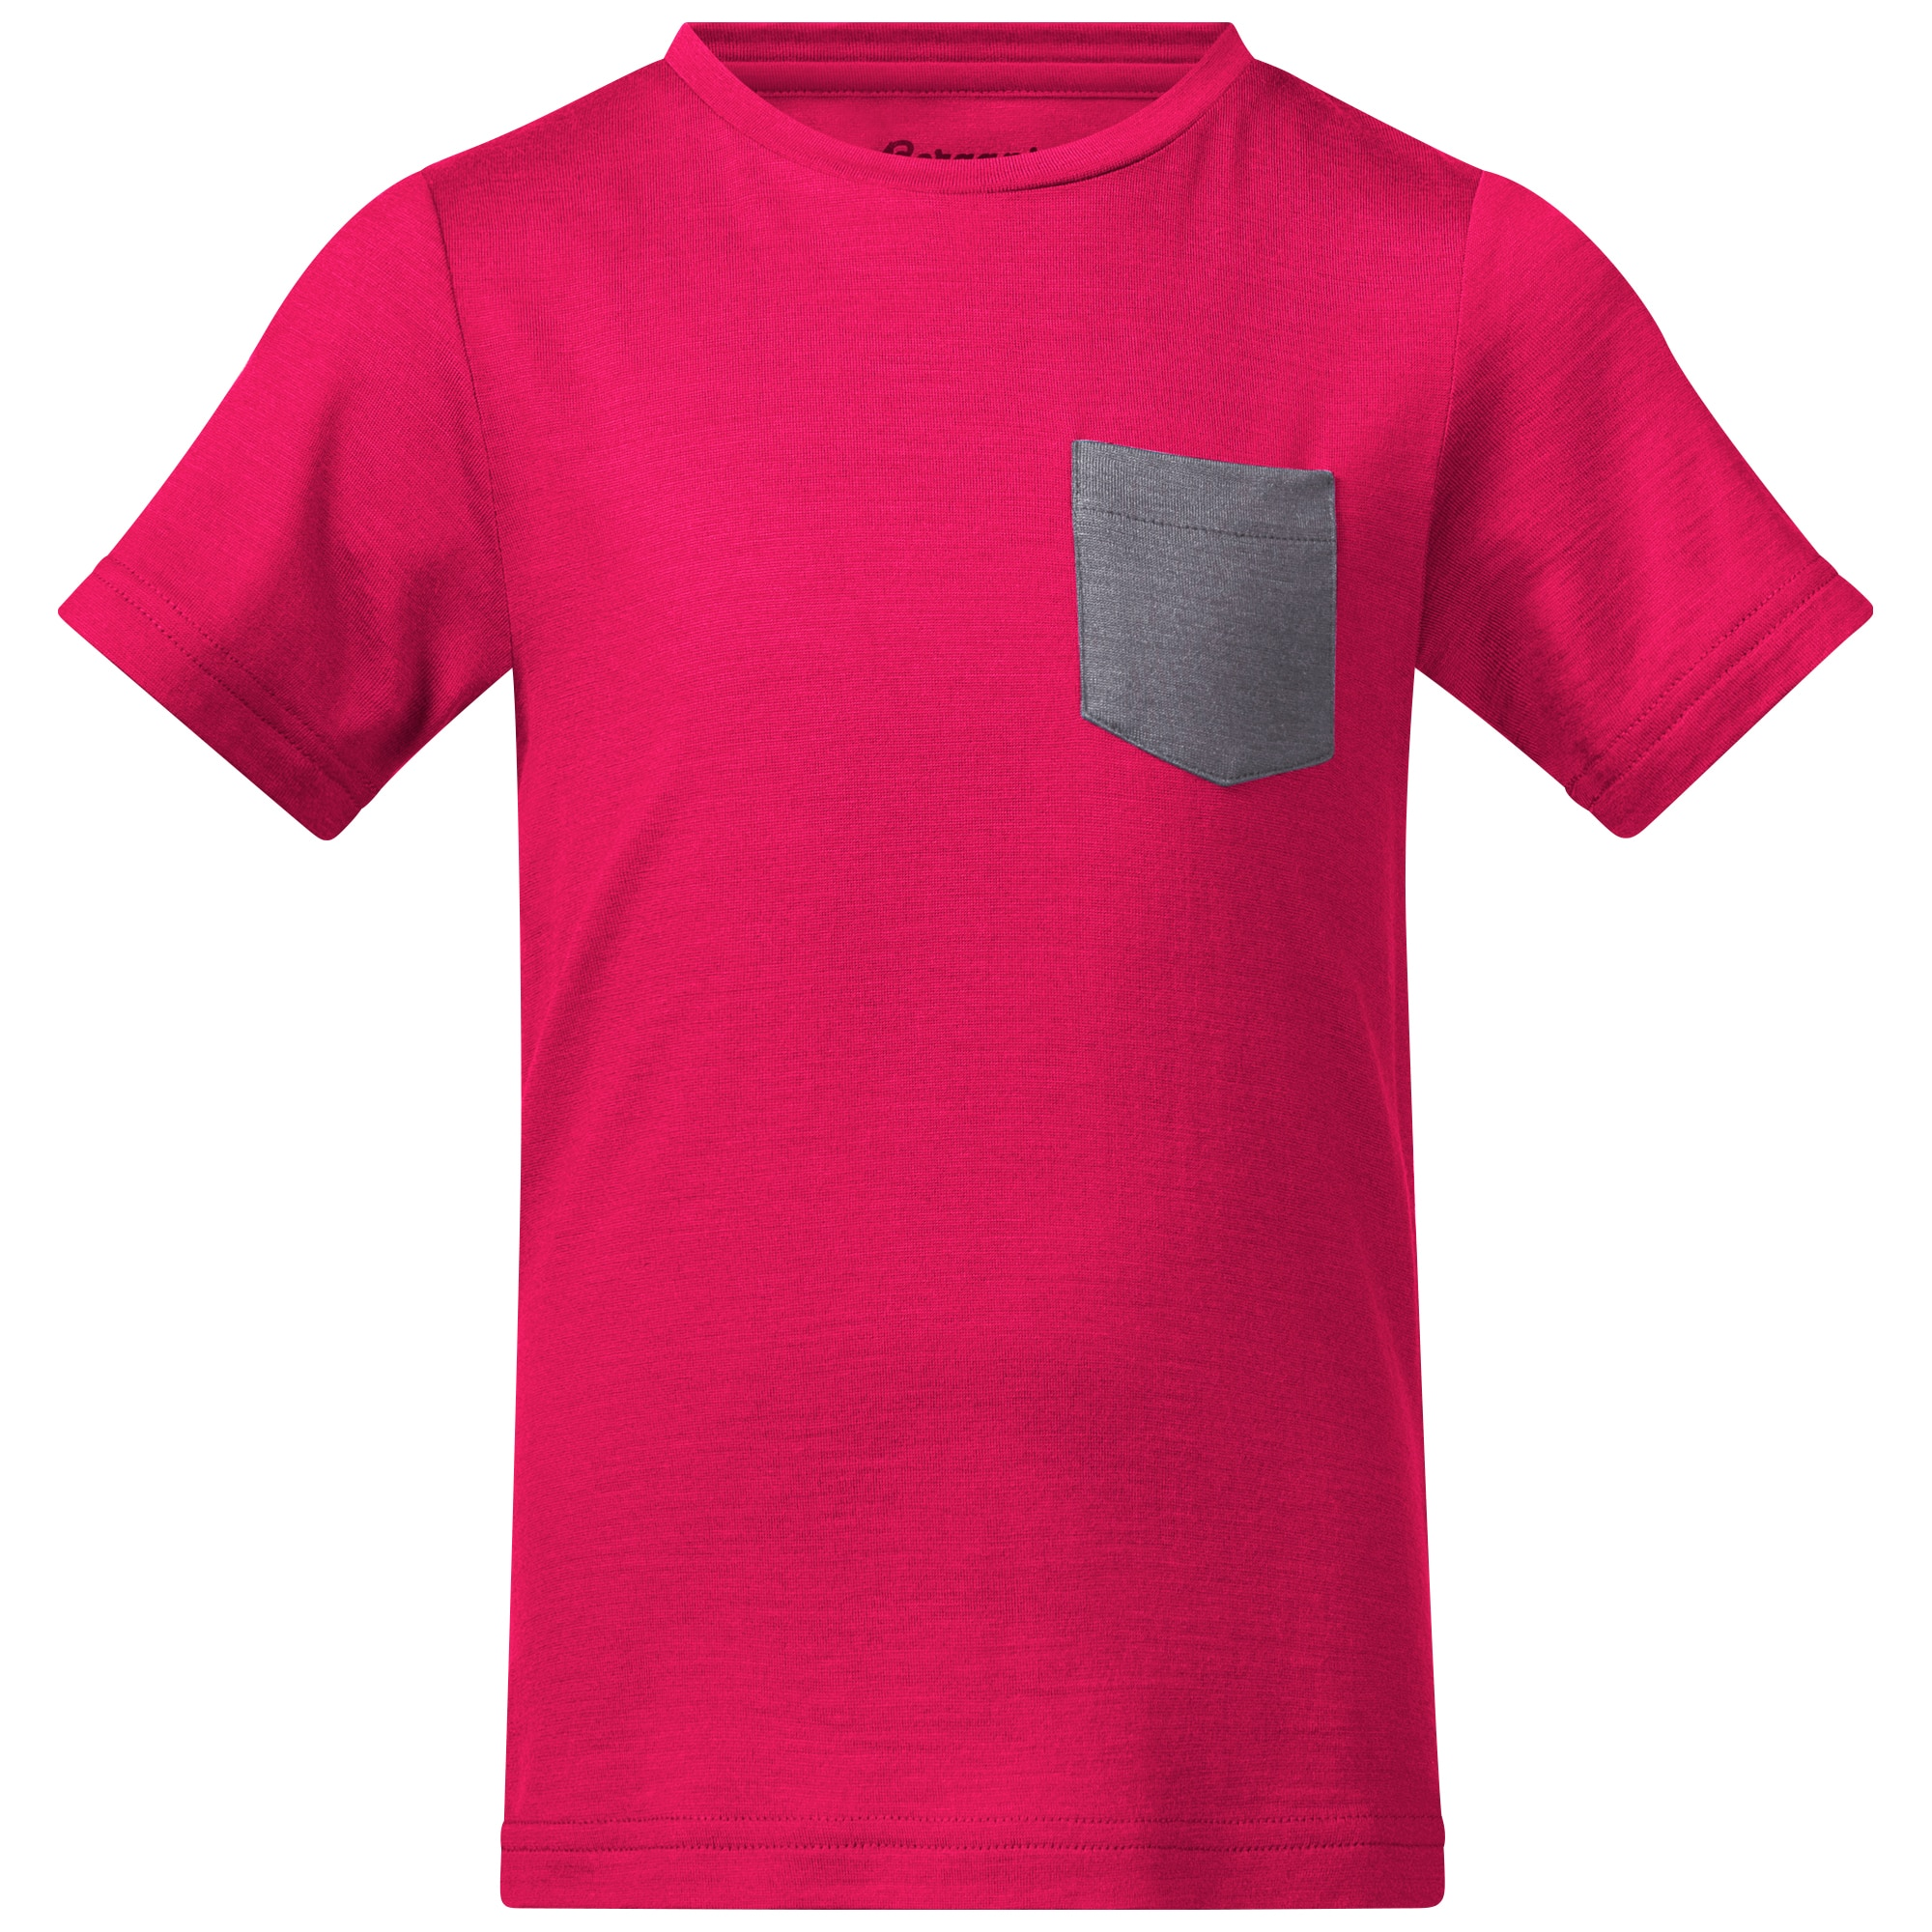 Myske Wool Kids Tee